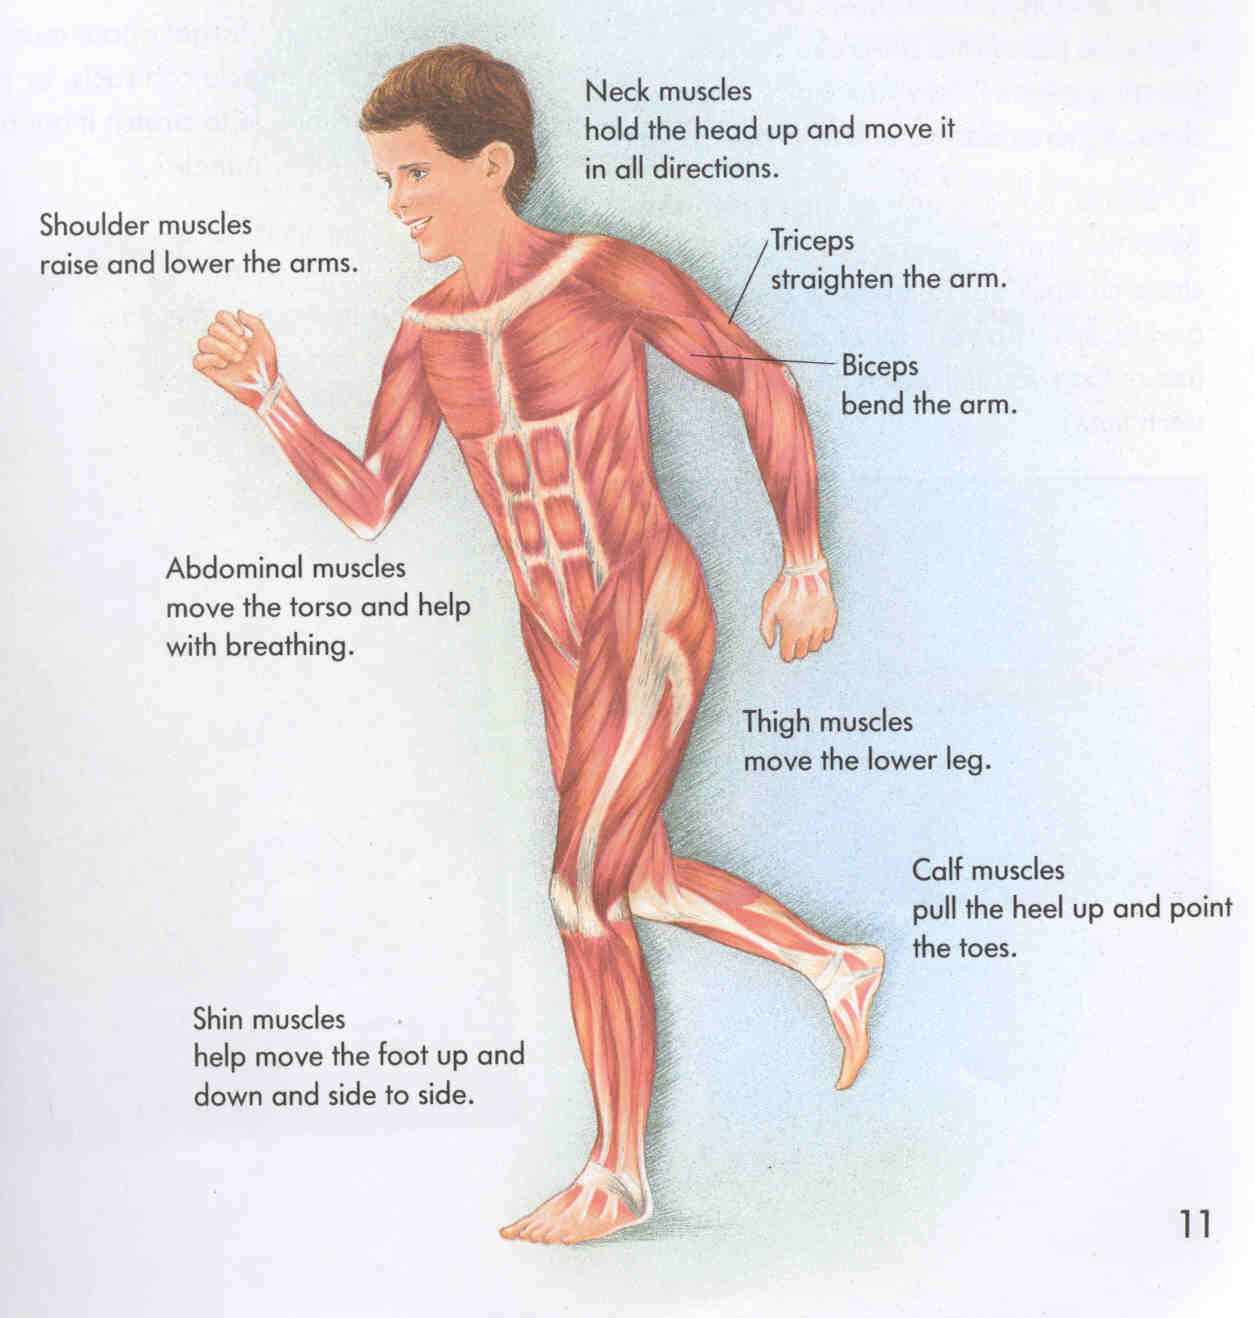 Chapter 17 additionally The Diaphragm Is A Muscle Stretch And Strengthen It besides Organs Of Nervous System And Their Functions Structural Organization Of The Human Body  c2 b7 Anatomy And Physiology besides ExcretorySystem together with Worksheet Answers. on organs involved in respiratory system anatomy physiology